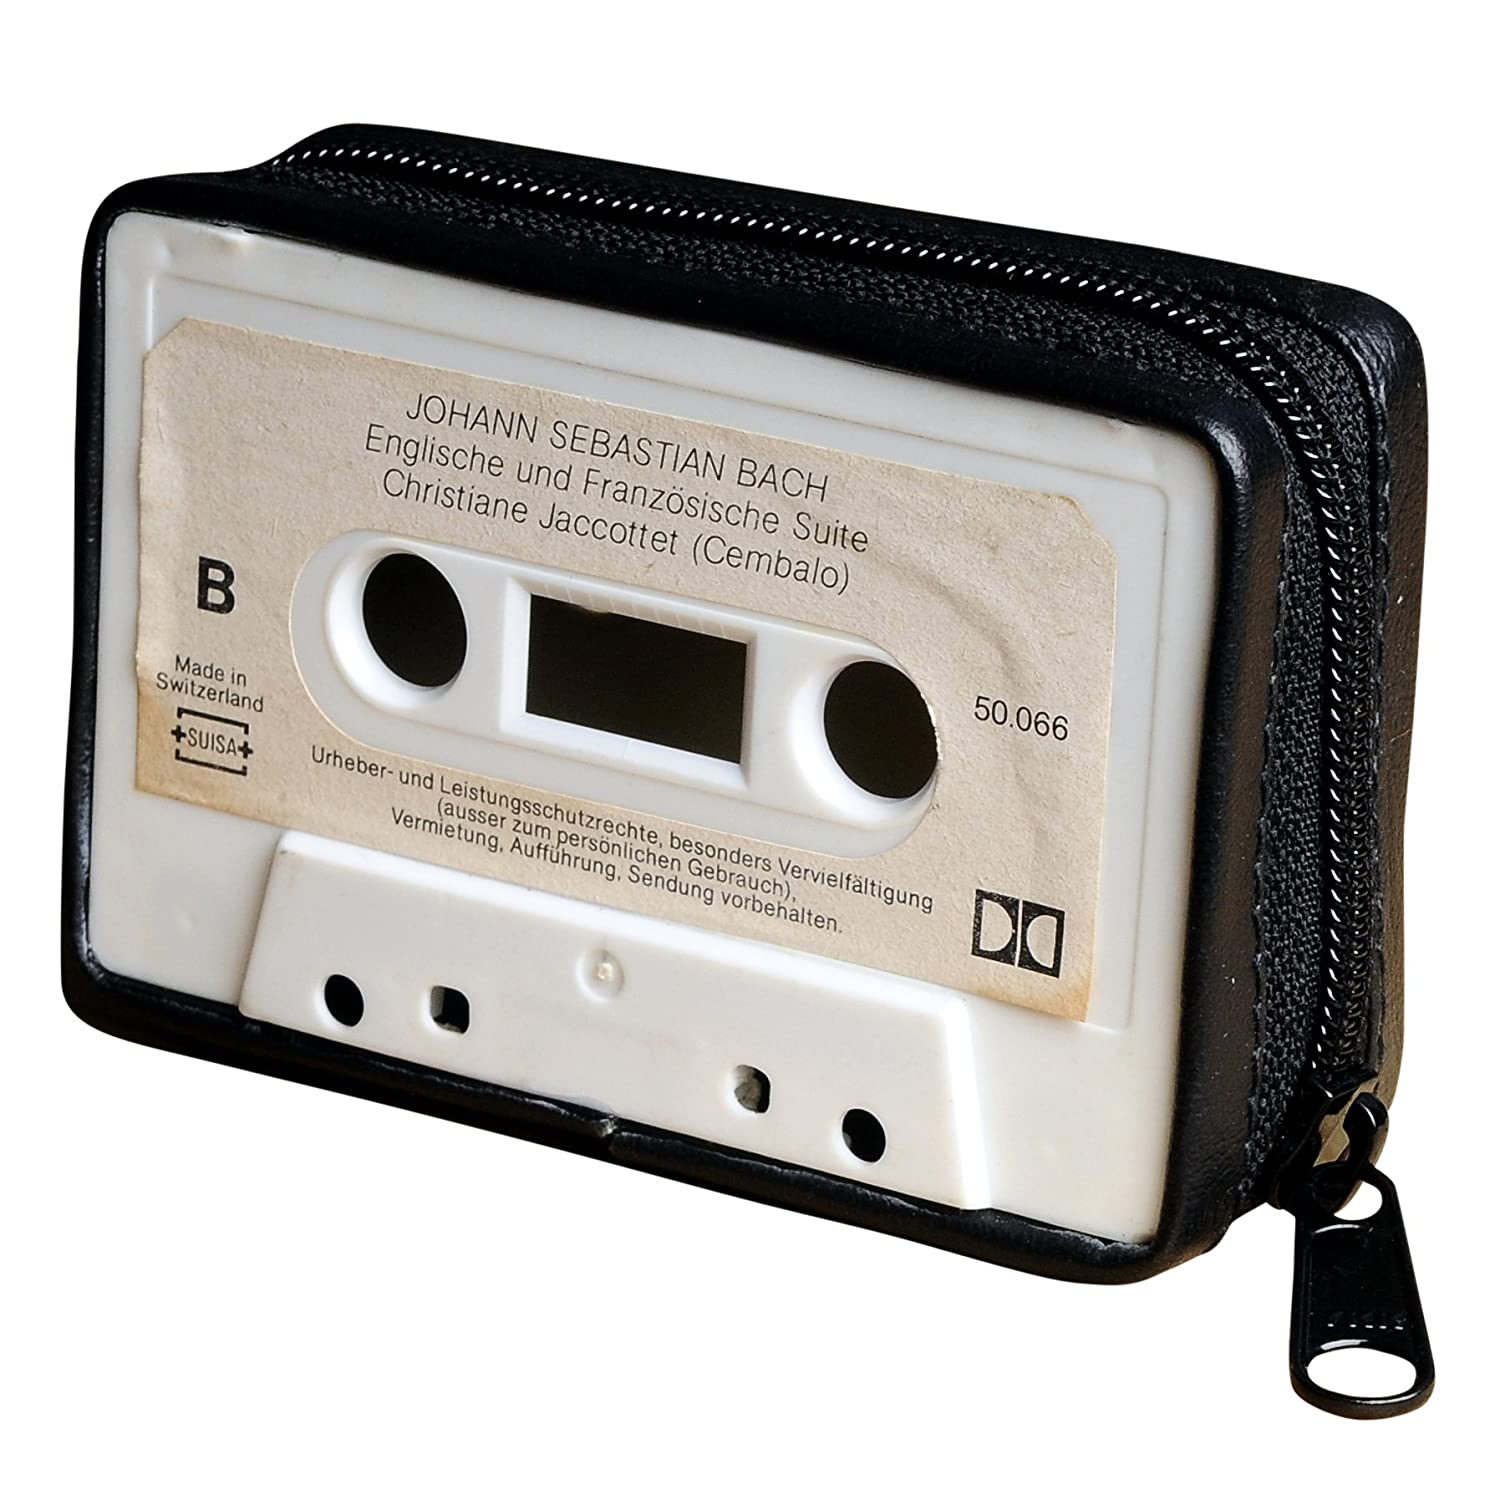 Small purse made of music cassette - FREE SHIPPING - cassettes tape recorder vintage retro lovers lover musician singer choir upcycled upcycle up-cycled recycled gorgeous smart person inspiration